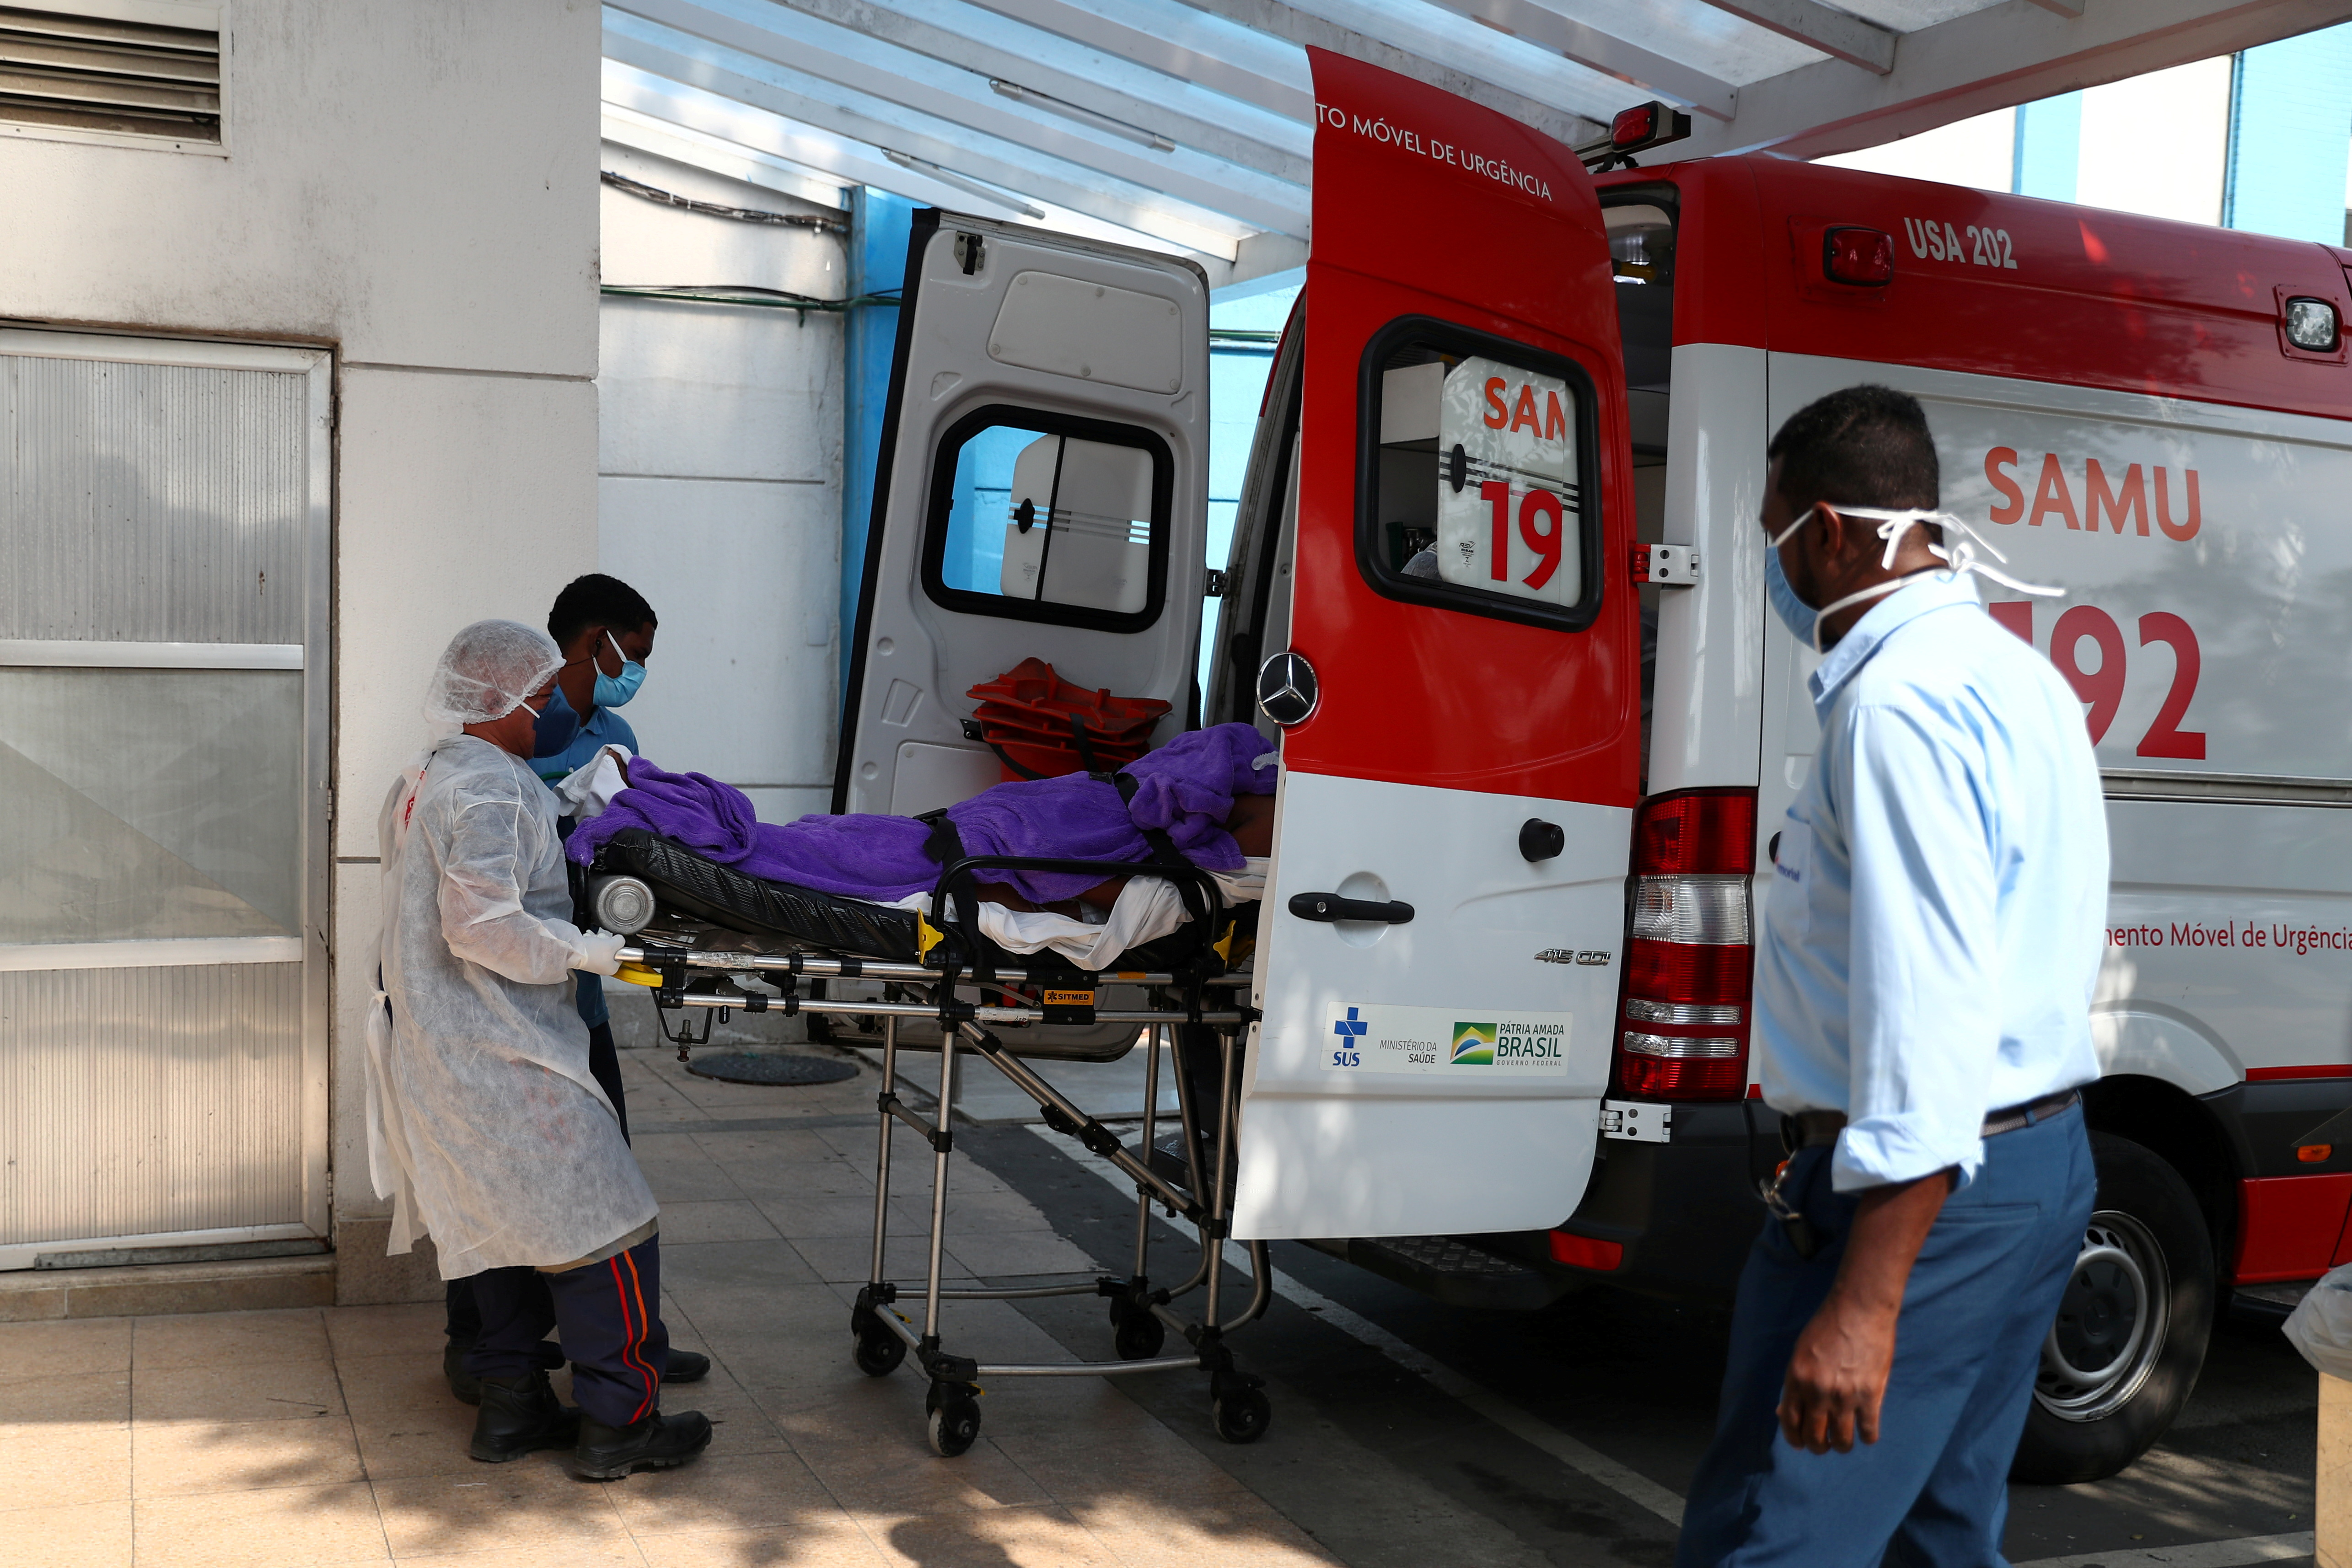 A patient with suspected COVID-19 infection arrives at the Sao Jose hospital in the Emergency Mobile Care Service (SAMU) ambulance, amid the coronavirus disease (COVID-19) outbreak, in Duque de Caxias near Rio de Janeiro, Brazil May 20, 2021. REUTERS/Pilar Olivares/File Photo